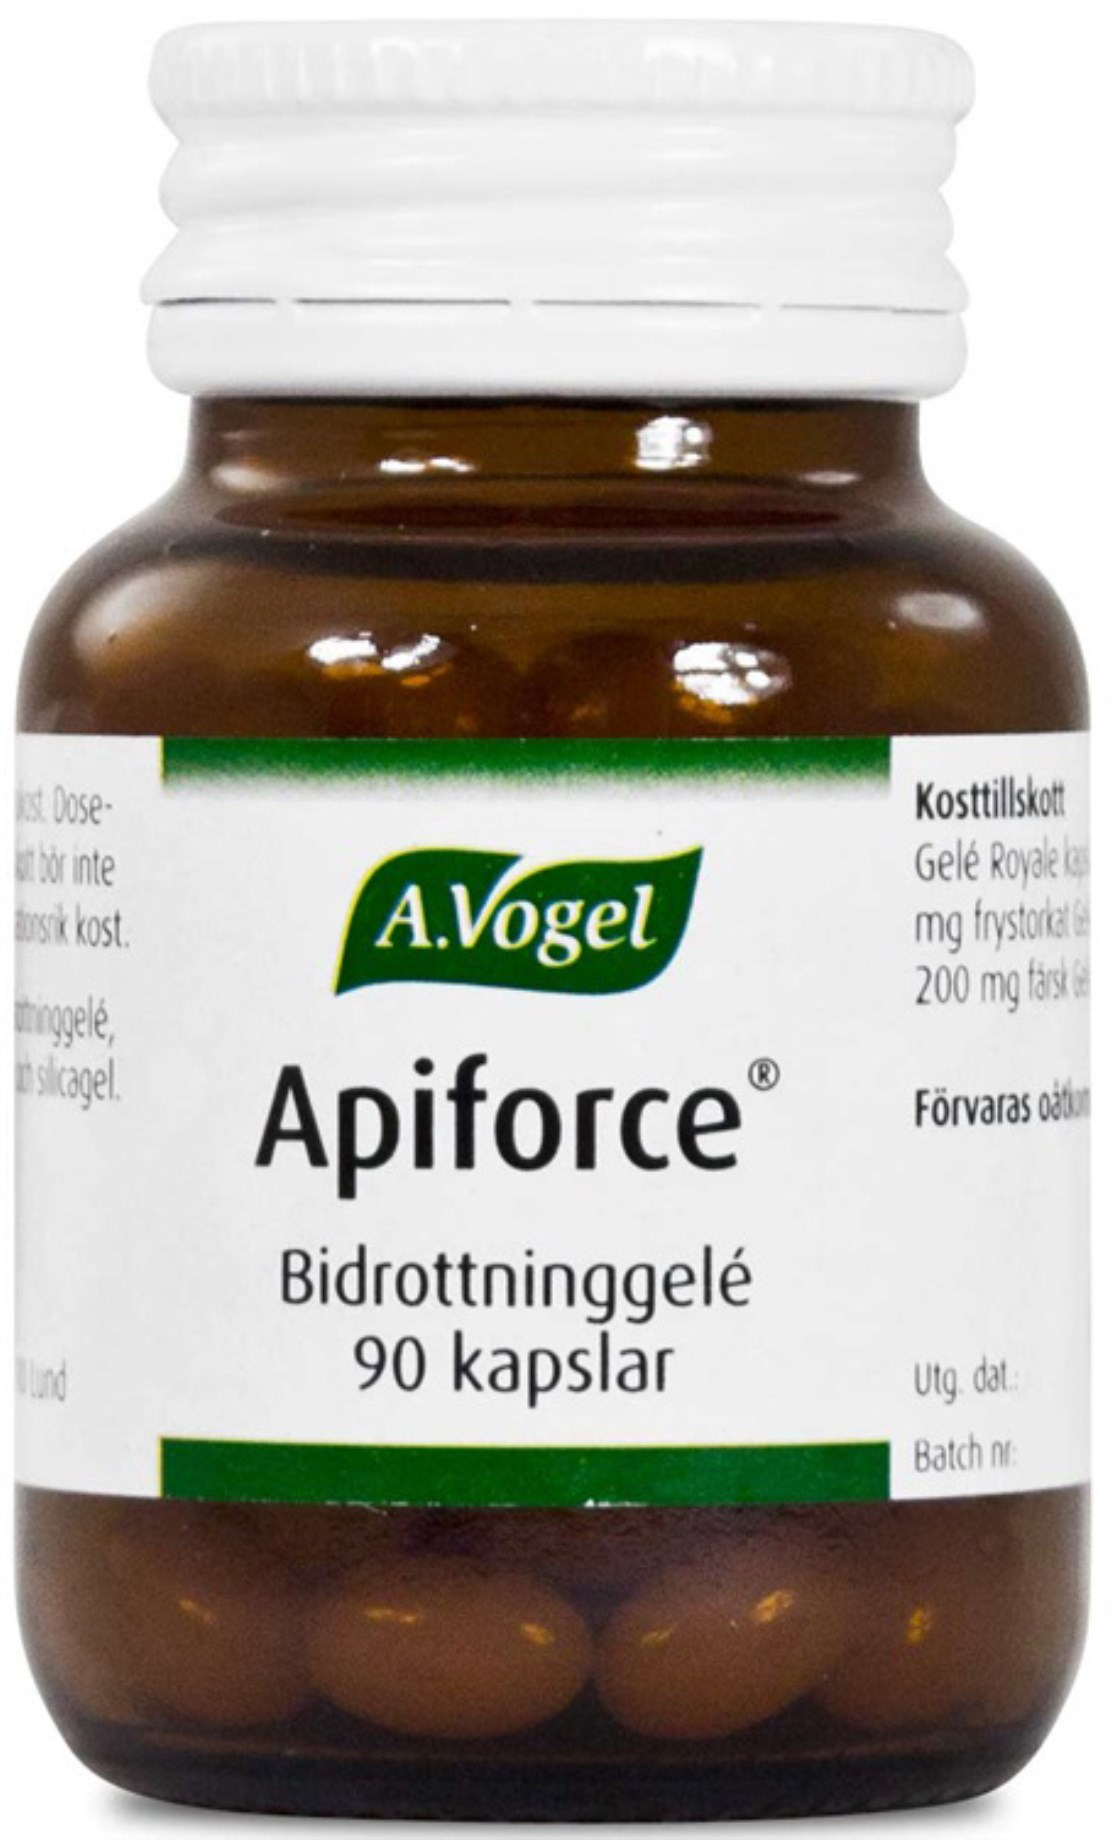 Apiforce Bidrottninggele,  - A.Vogel